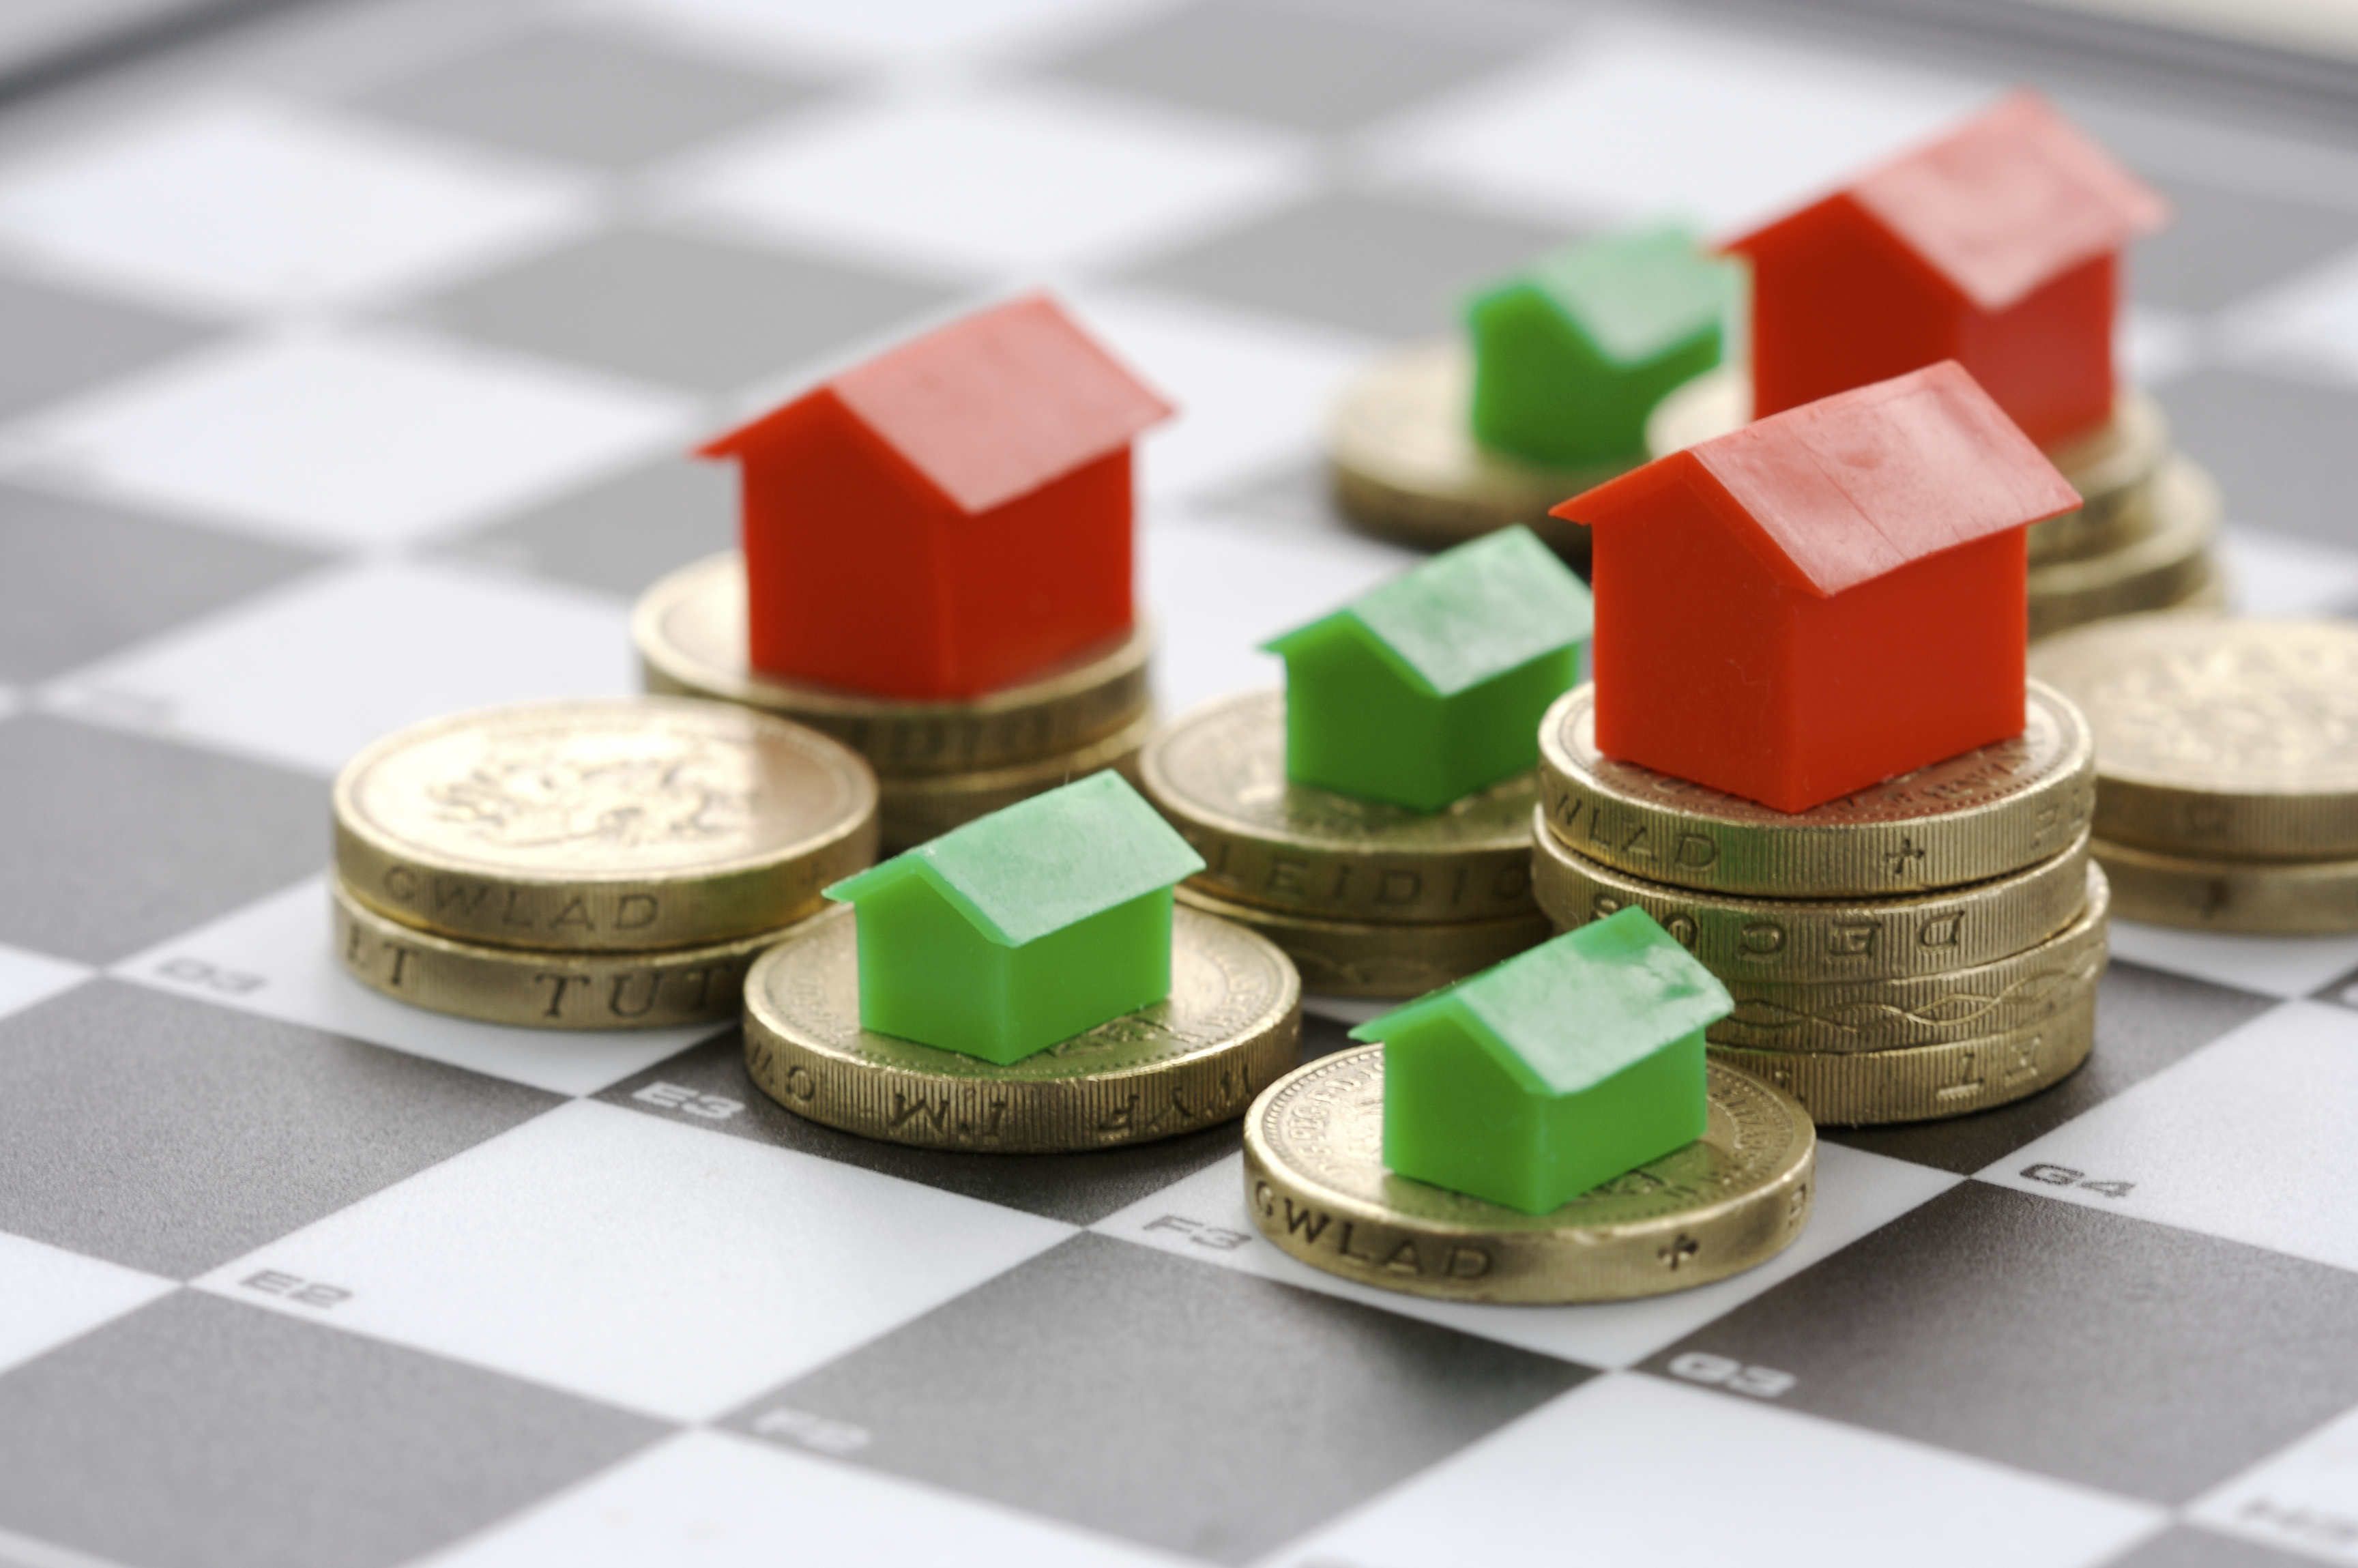 Anti-avoidance rules could catch property owners unawares